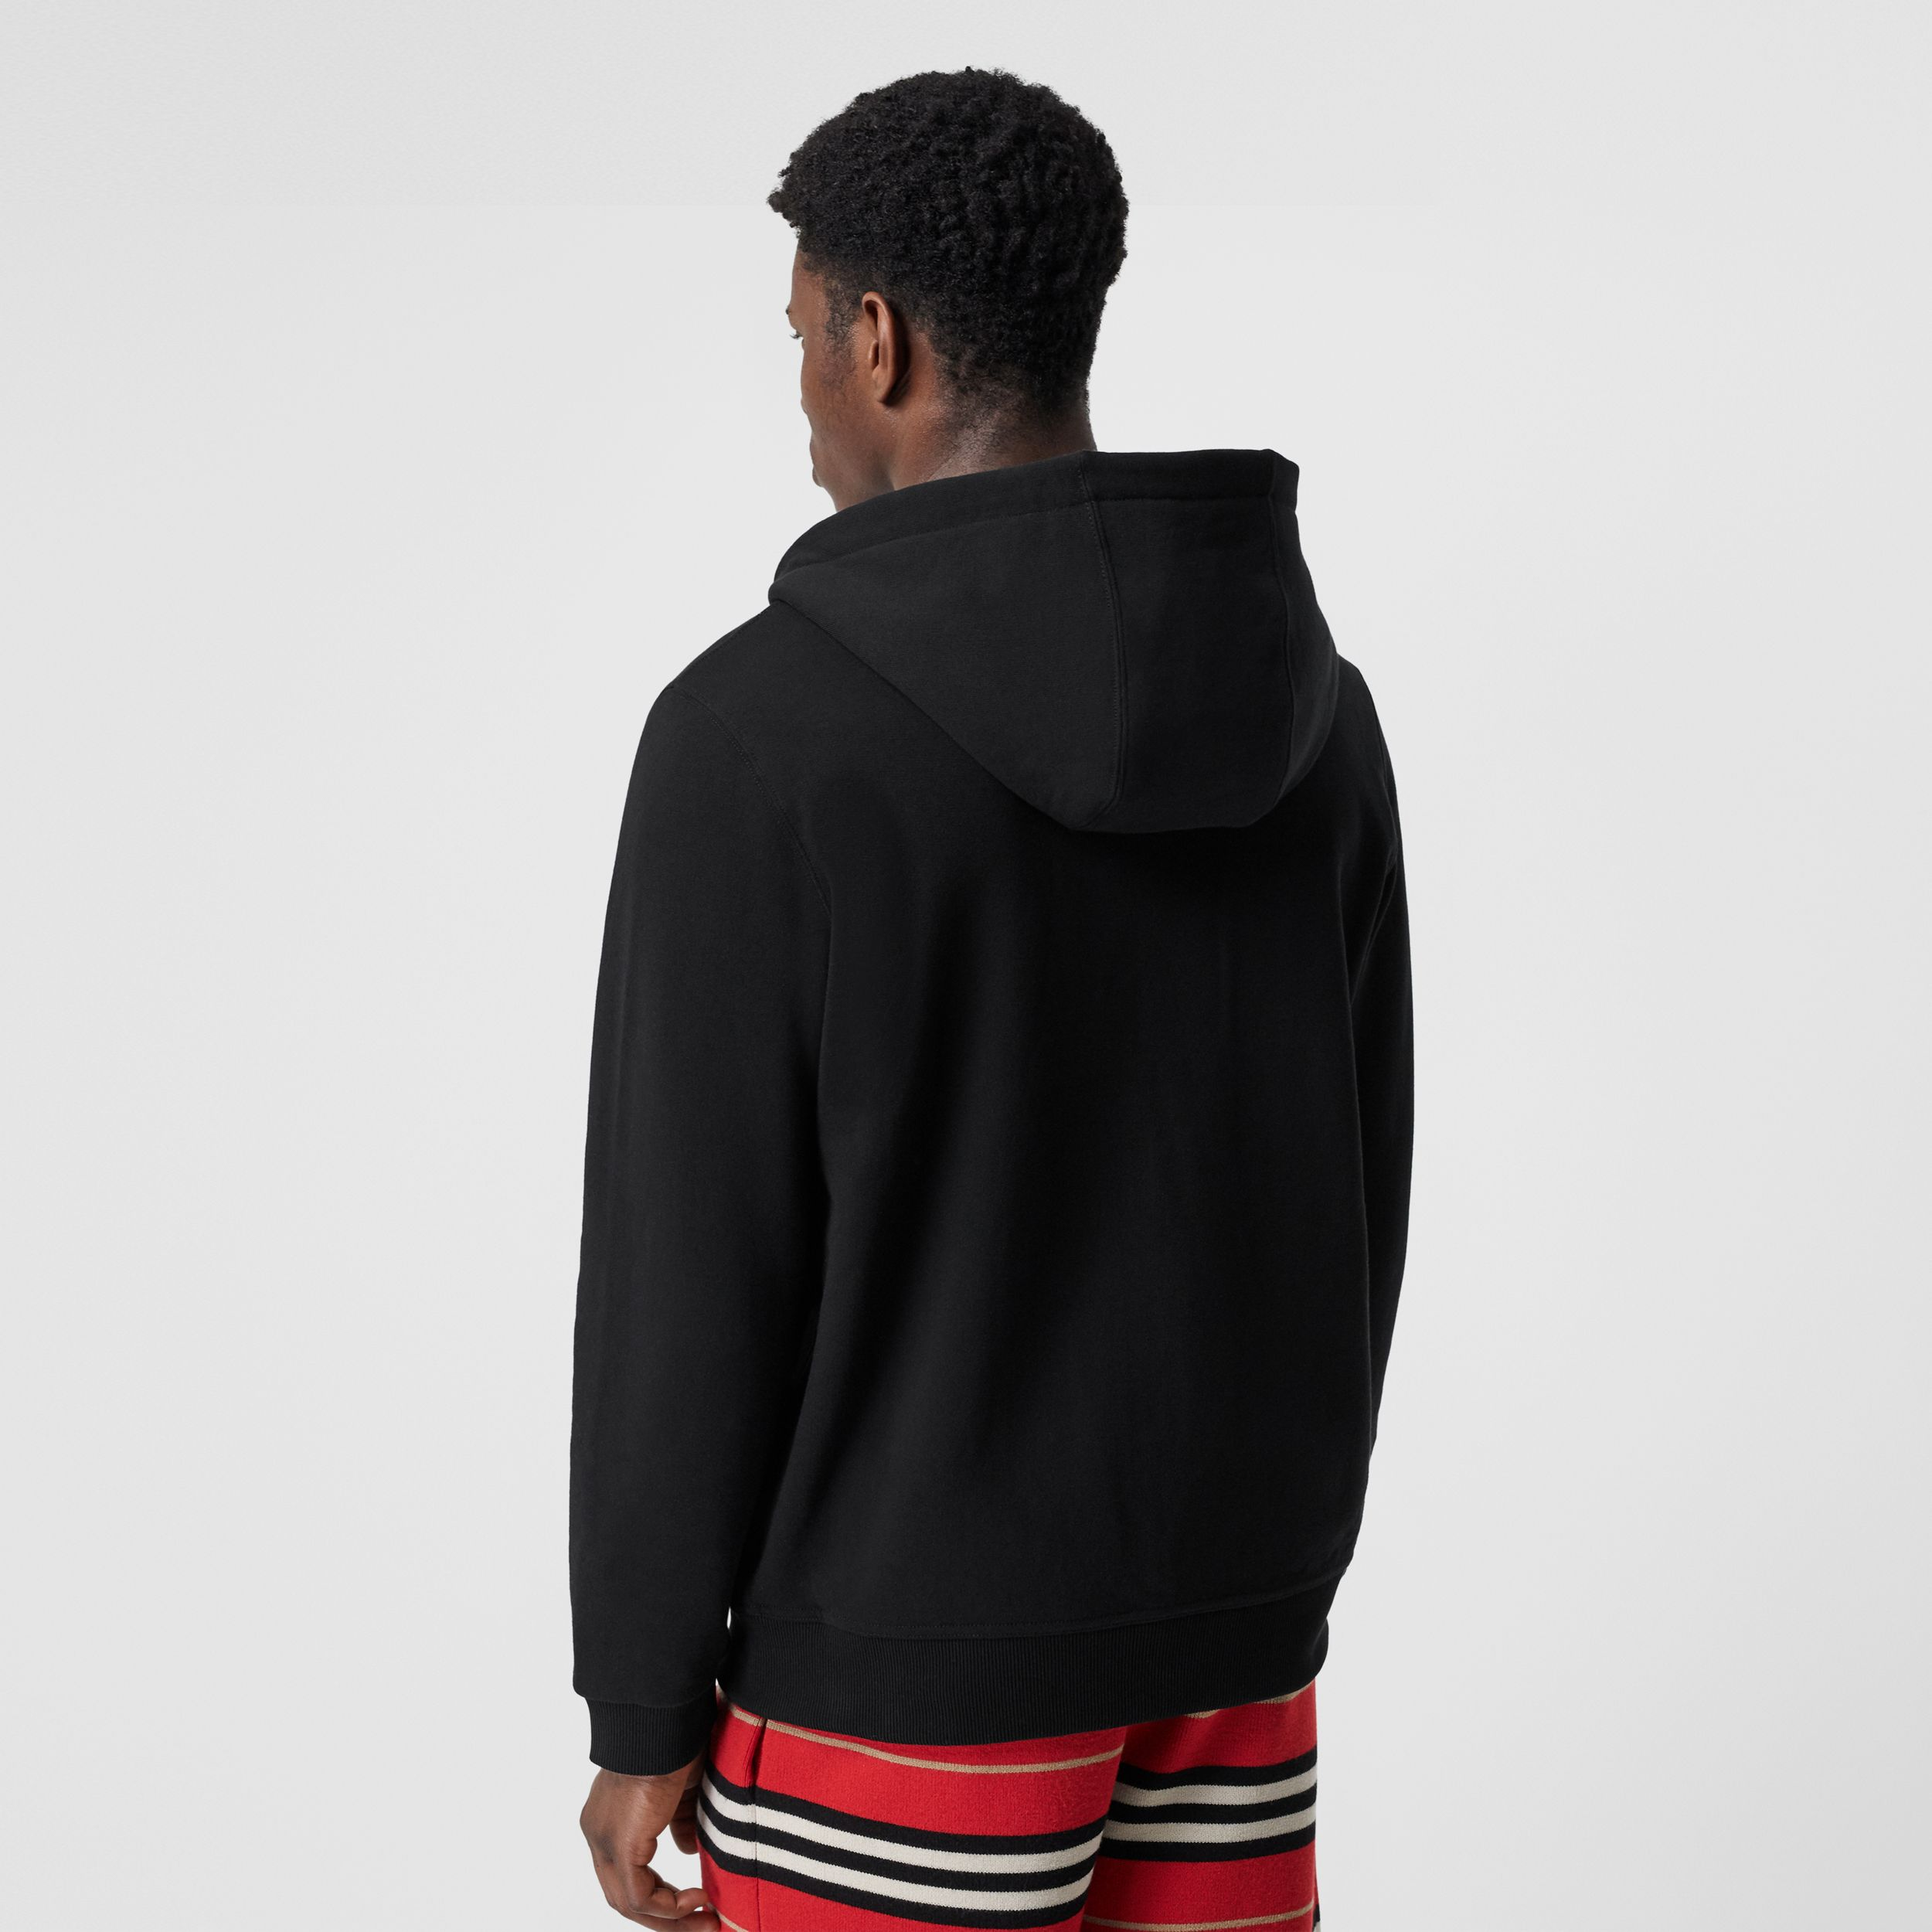 Monogram Motif Cotton Hooded Top in Black | Burberry - 3